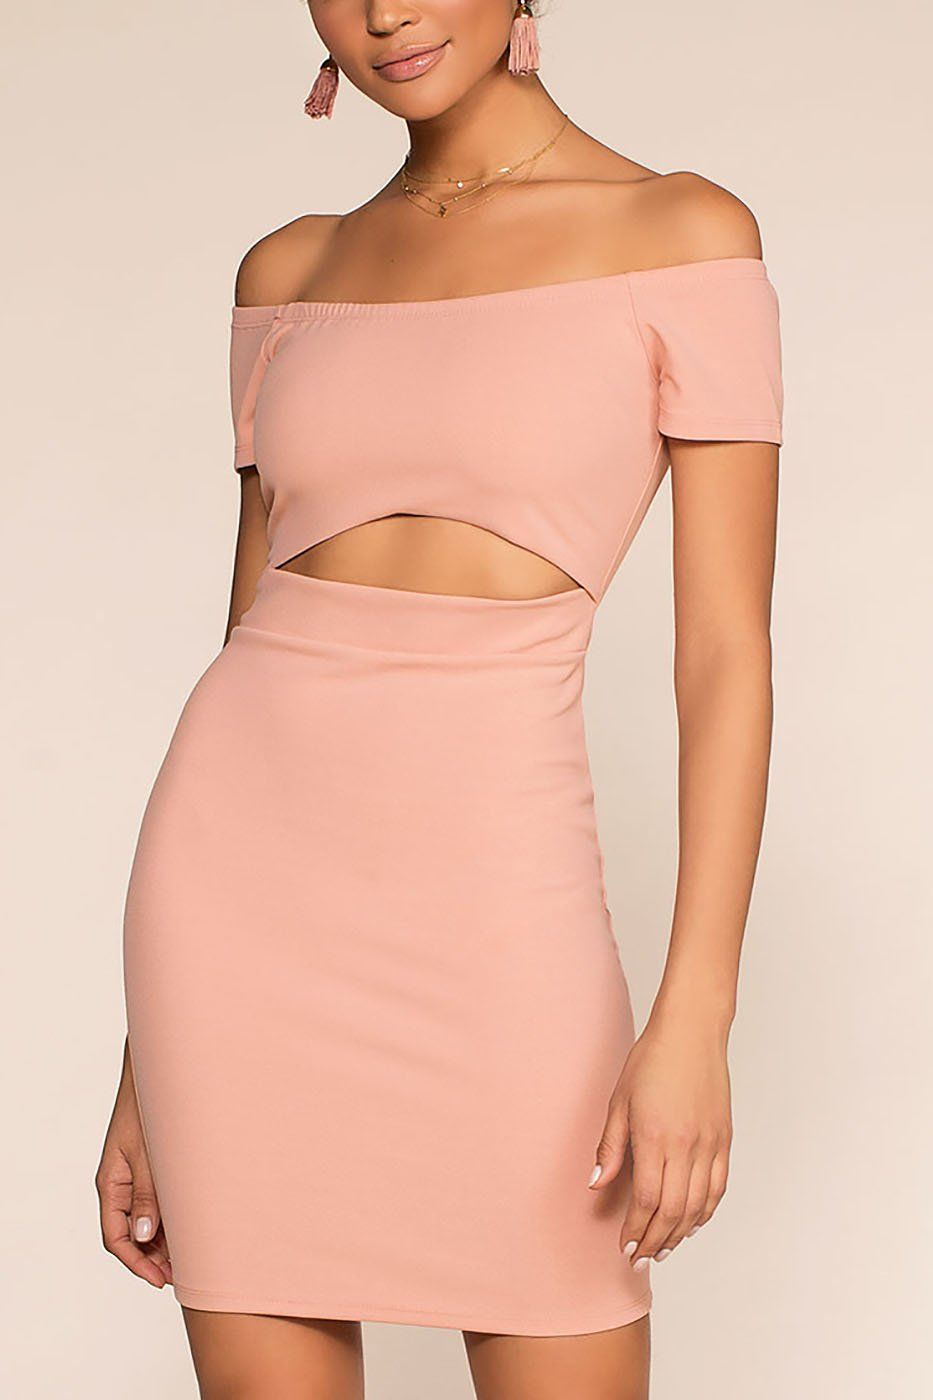 Just Whistle Bodycon Dress - Pink | Ambiance